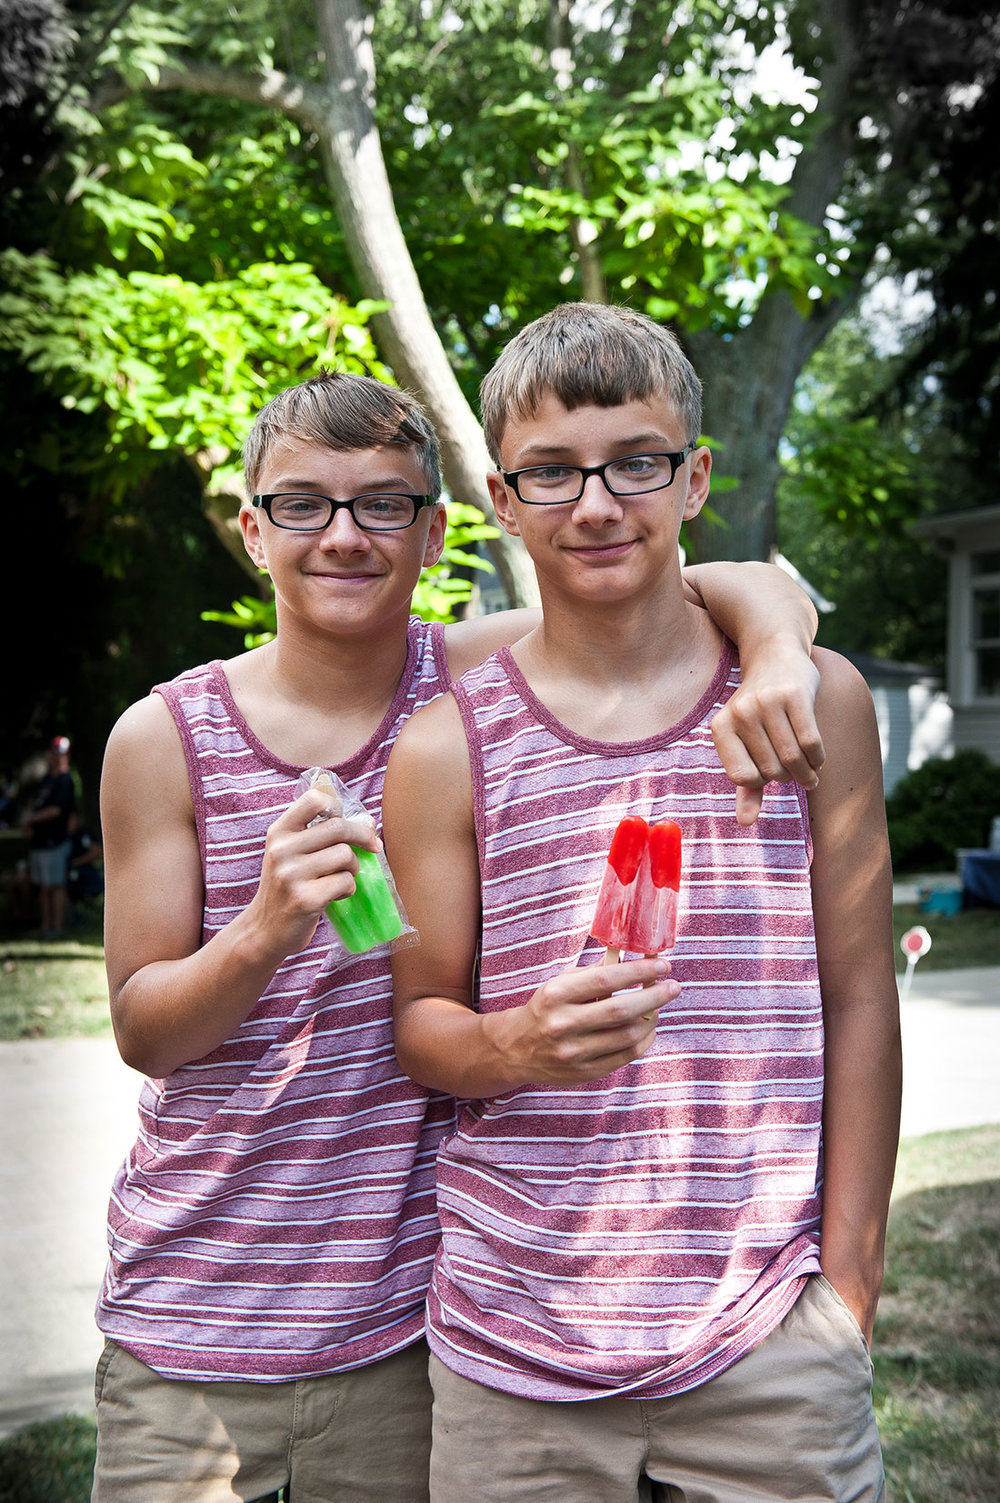 Ice Pop Twins from Ohio